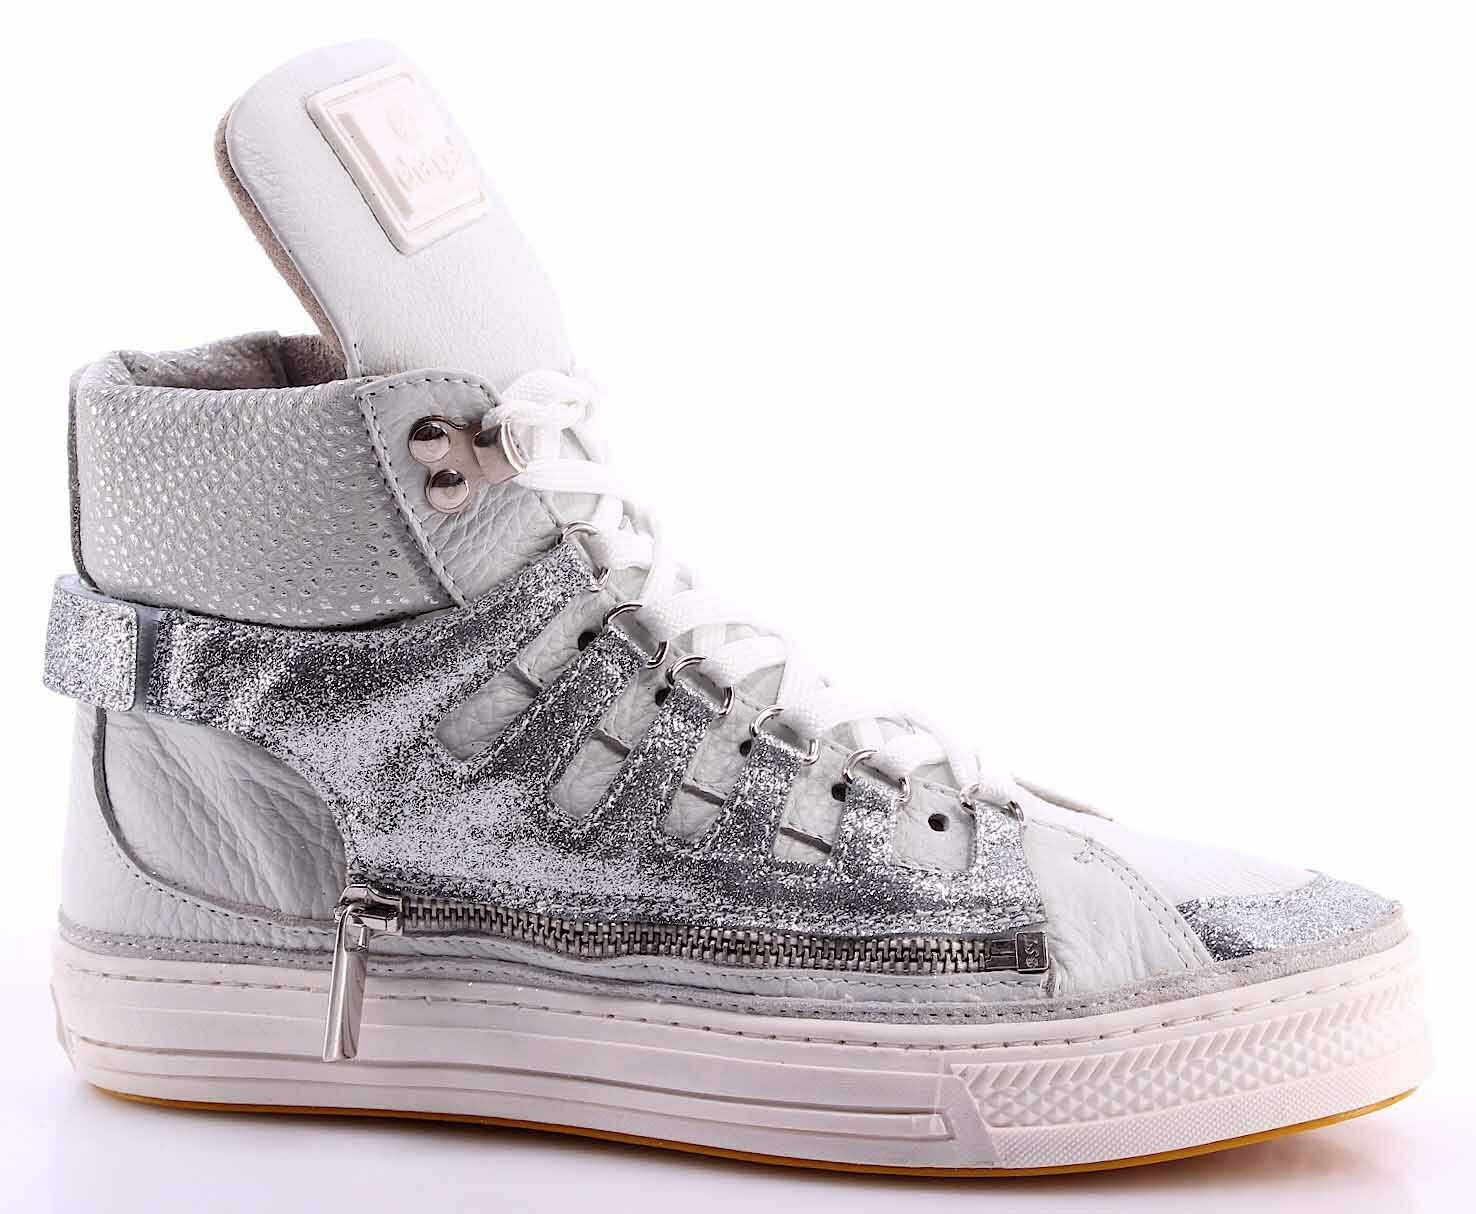 Chaussure Femme Sneakers Cheville CHANGE  MaxW Star Star Star silver Shock Bianco Made IT 8f4579